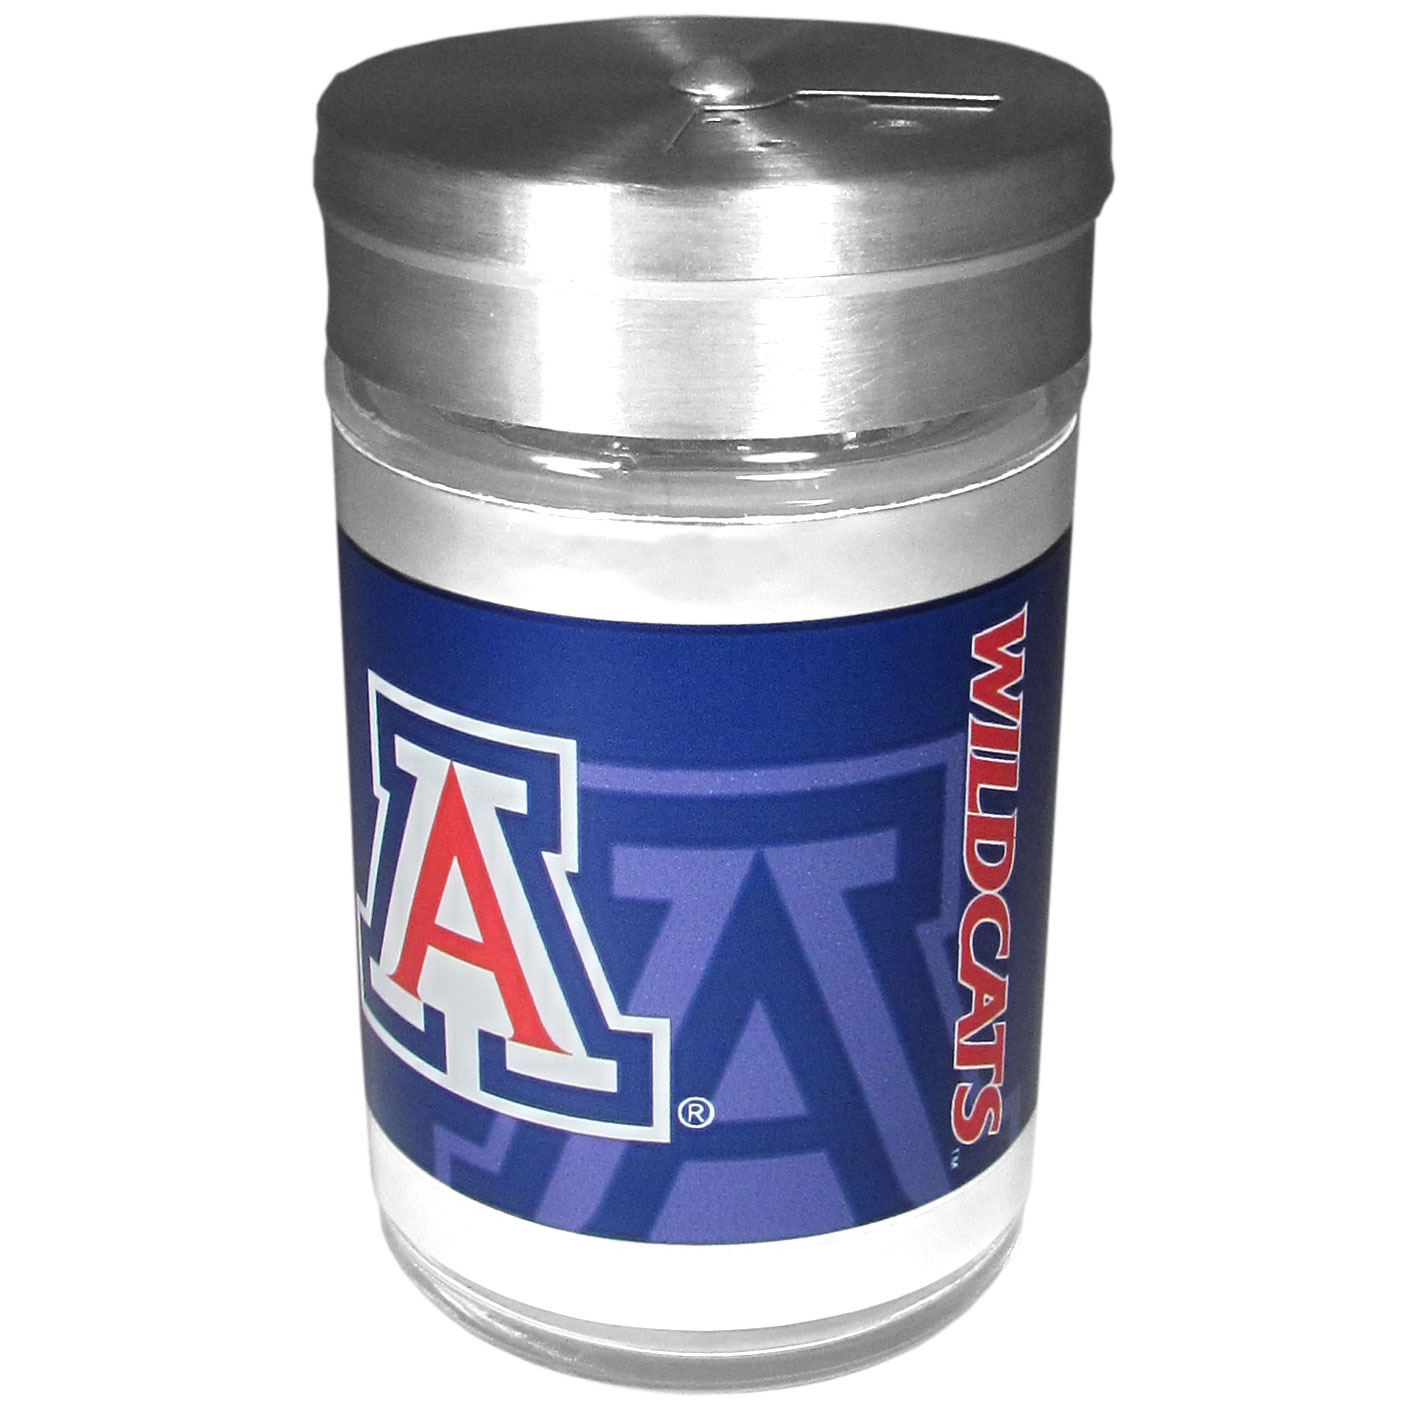 Arizona Wildcats Tailgater Season Shakers - Spice it up with our Arizona Wildcats tailgater season shakers! This compact shaker is 2 inch tall with a twist top that closes off the holes at the top making it perfect for travel preventing those messy spills. The shaker has wide holes perfect for keeping your pepper seeds or cheese toppings. The bright team graphics will make you the envy of the other fans while you are grilling up your tailgating goodies.